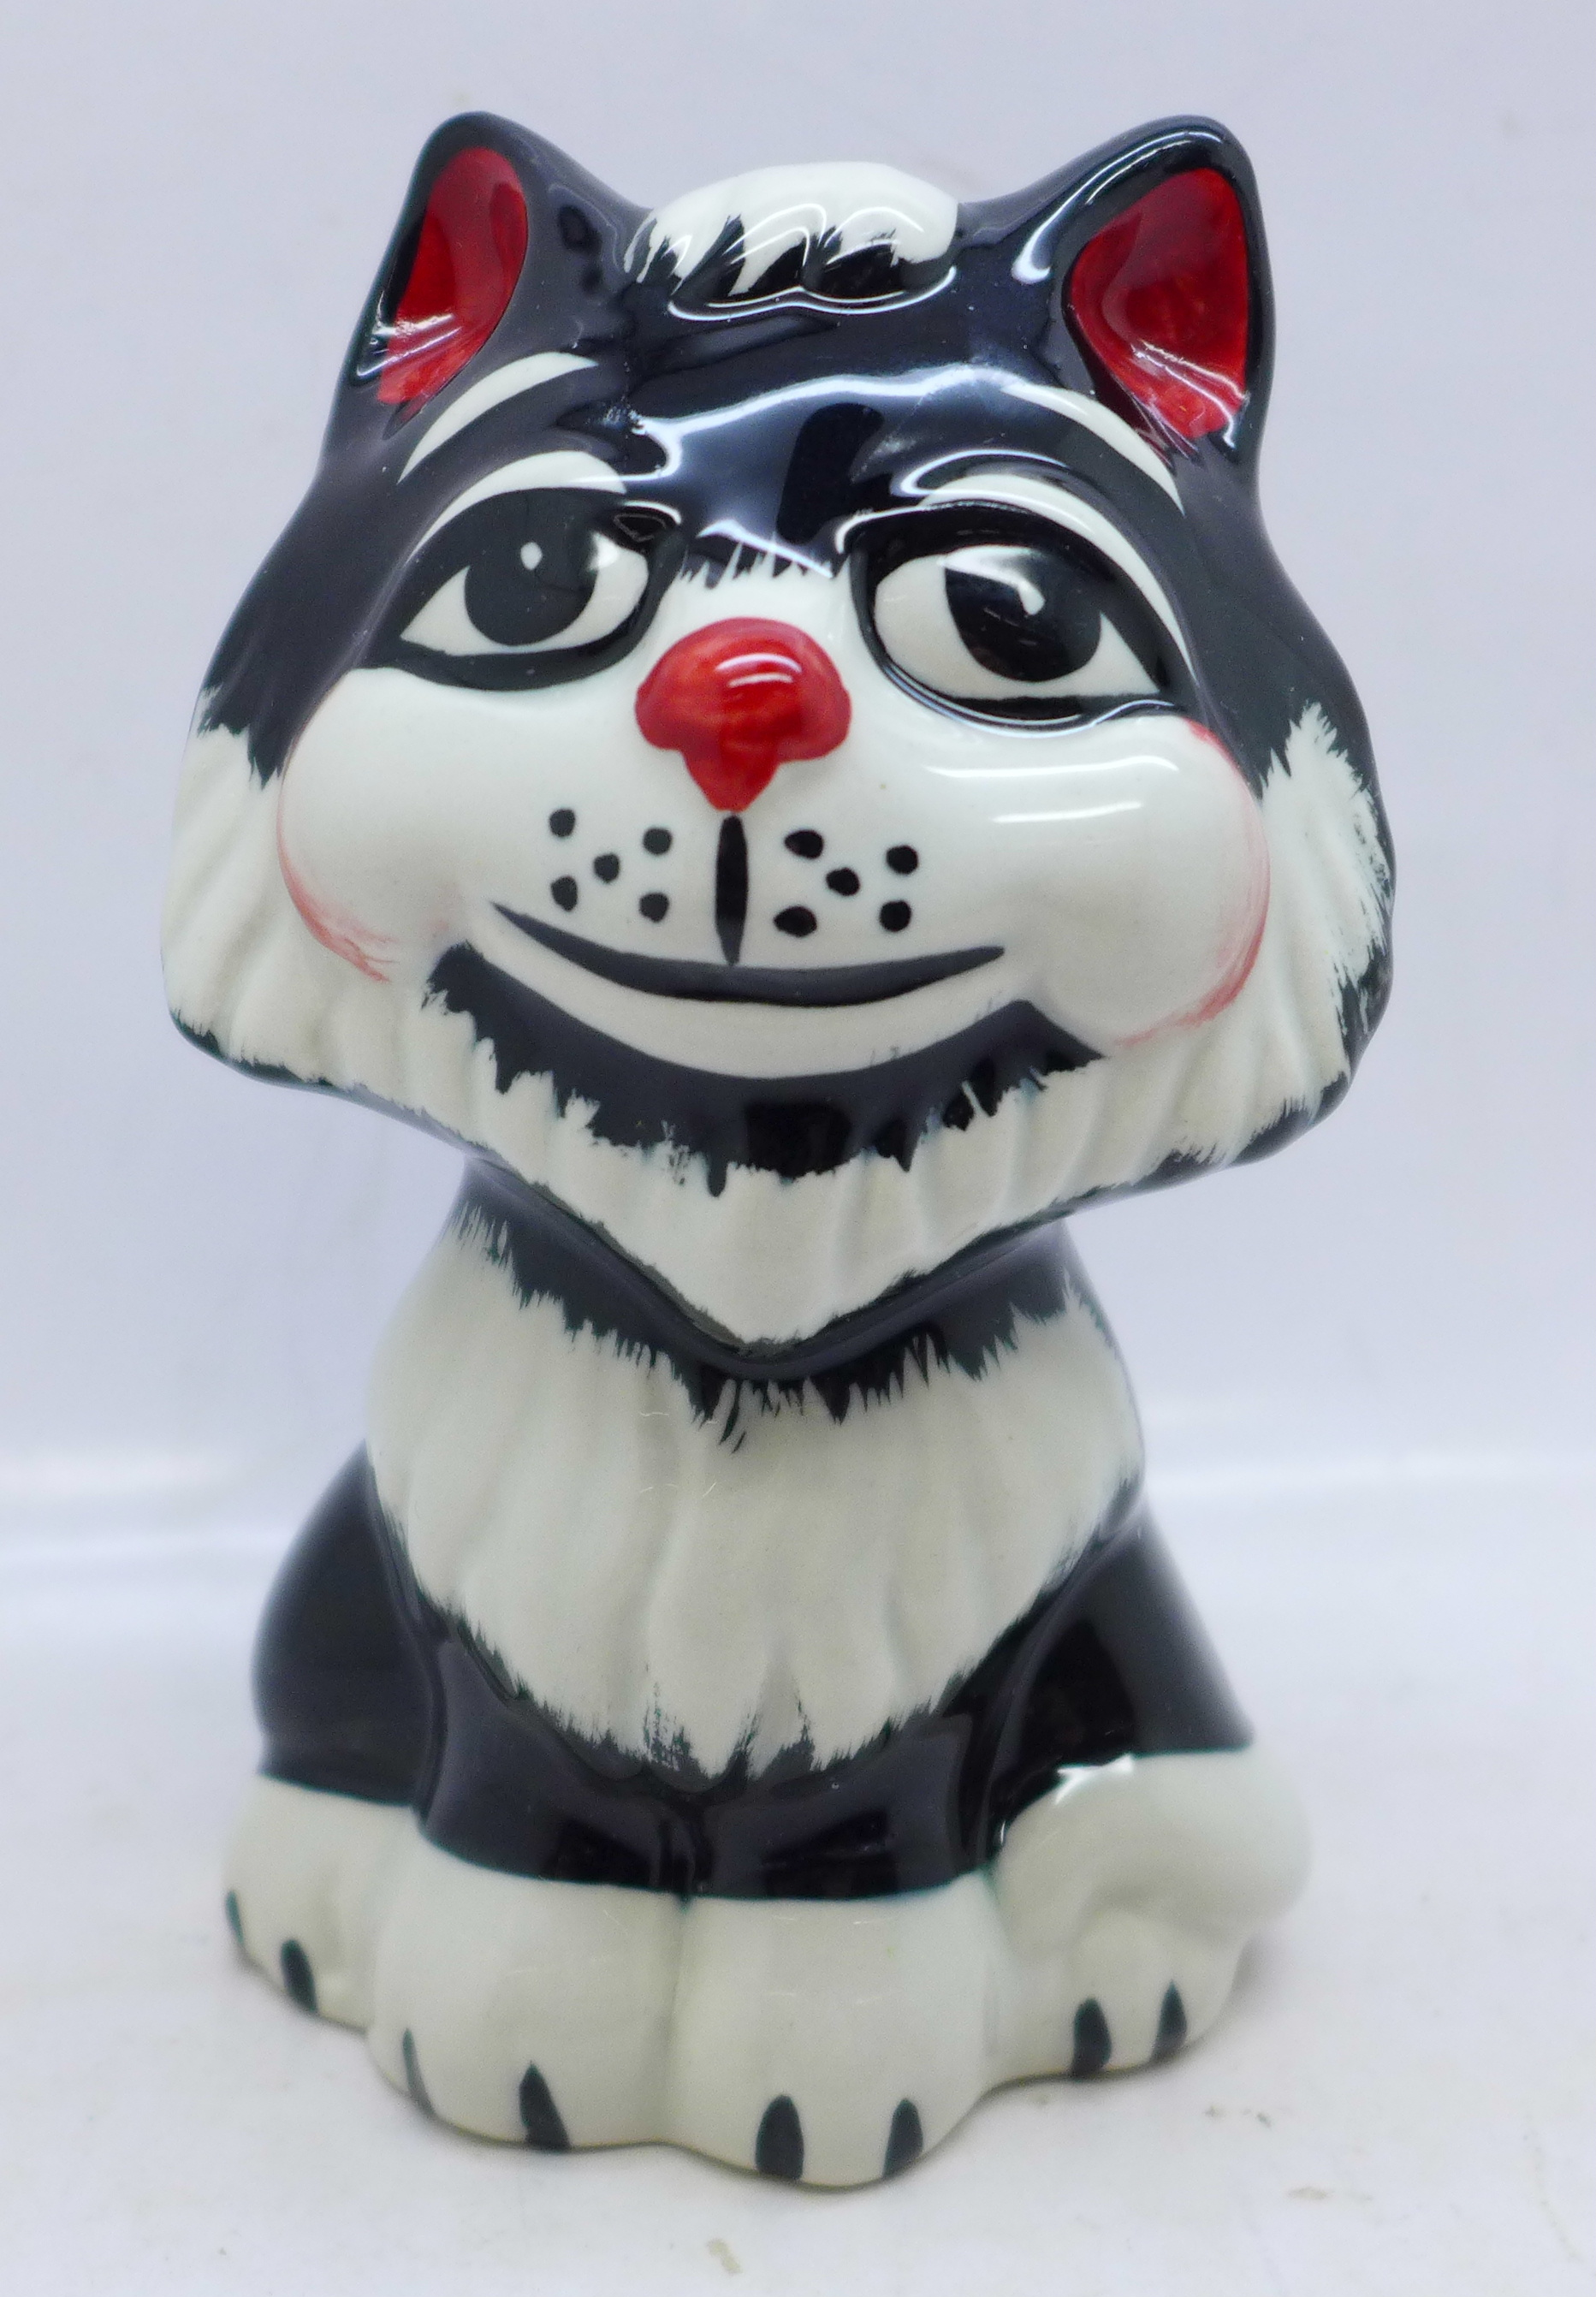 Lorna Bailey Pottery, 'Tex the Cat', signed on base, 12cm